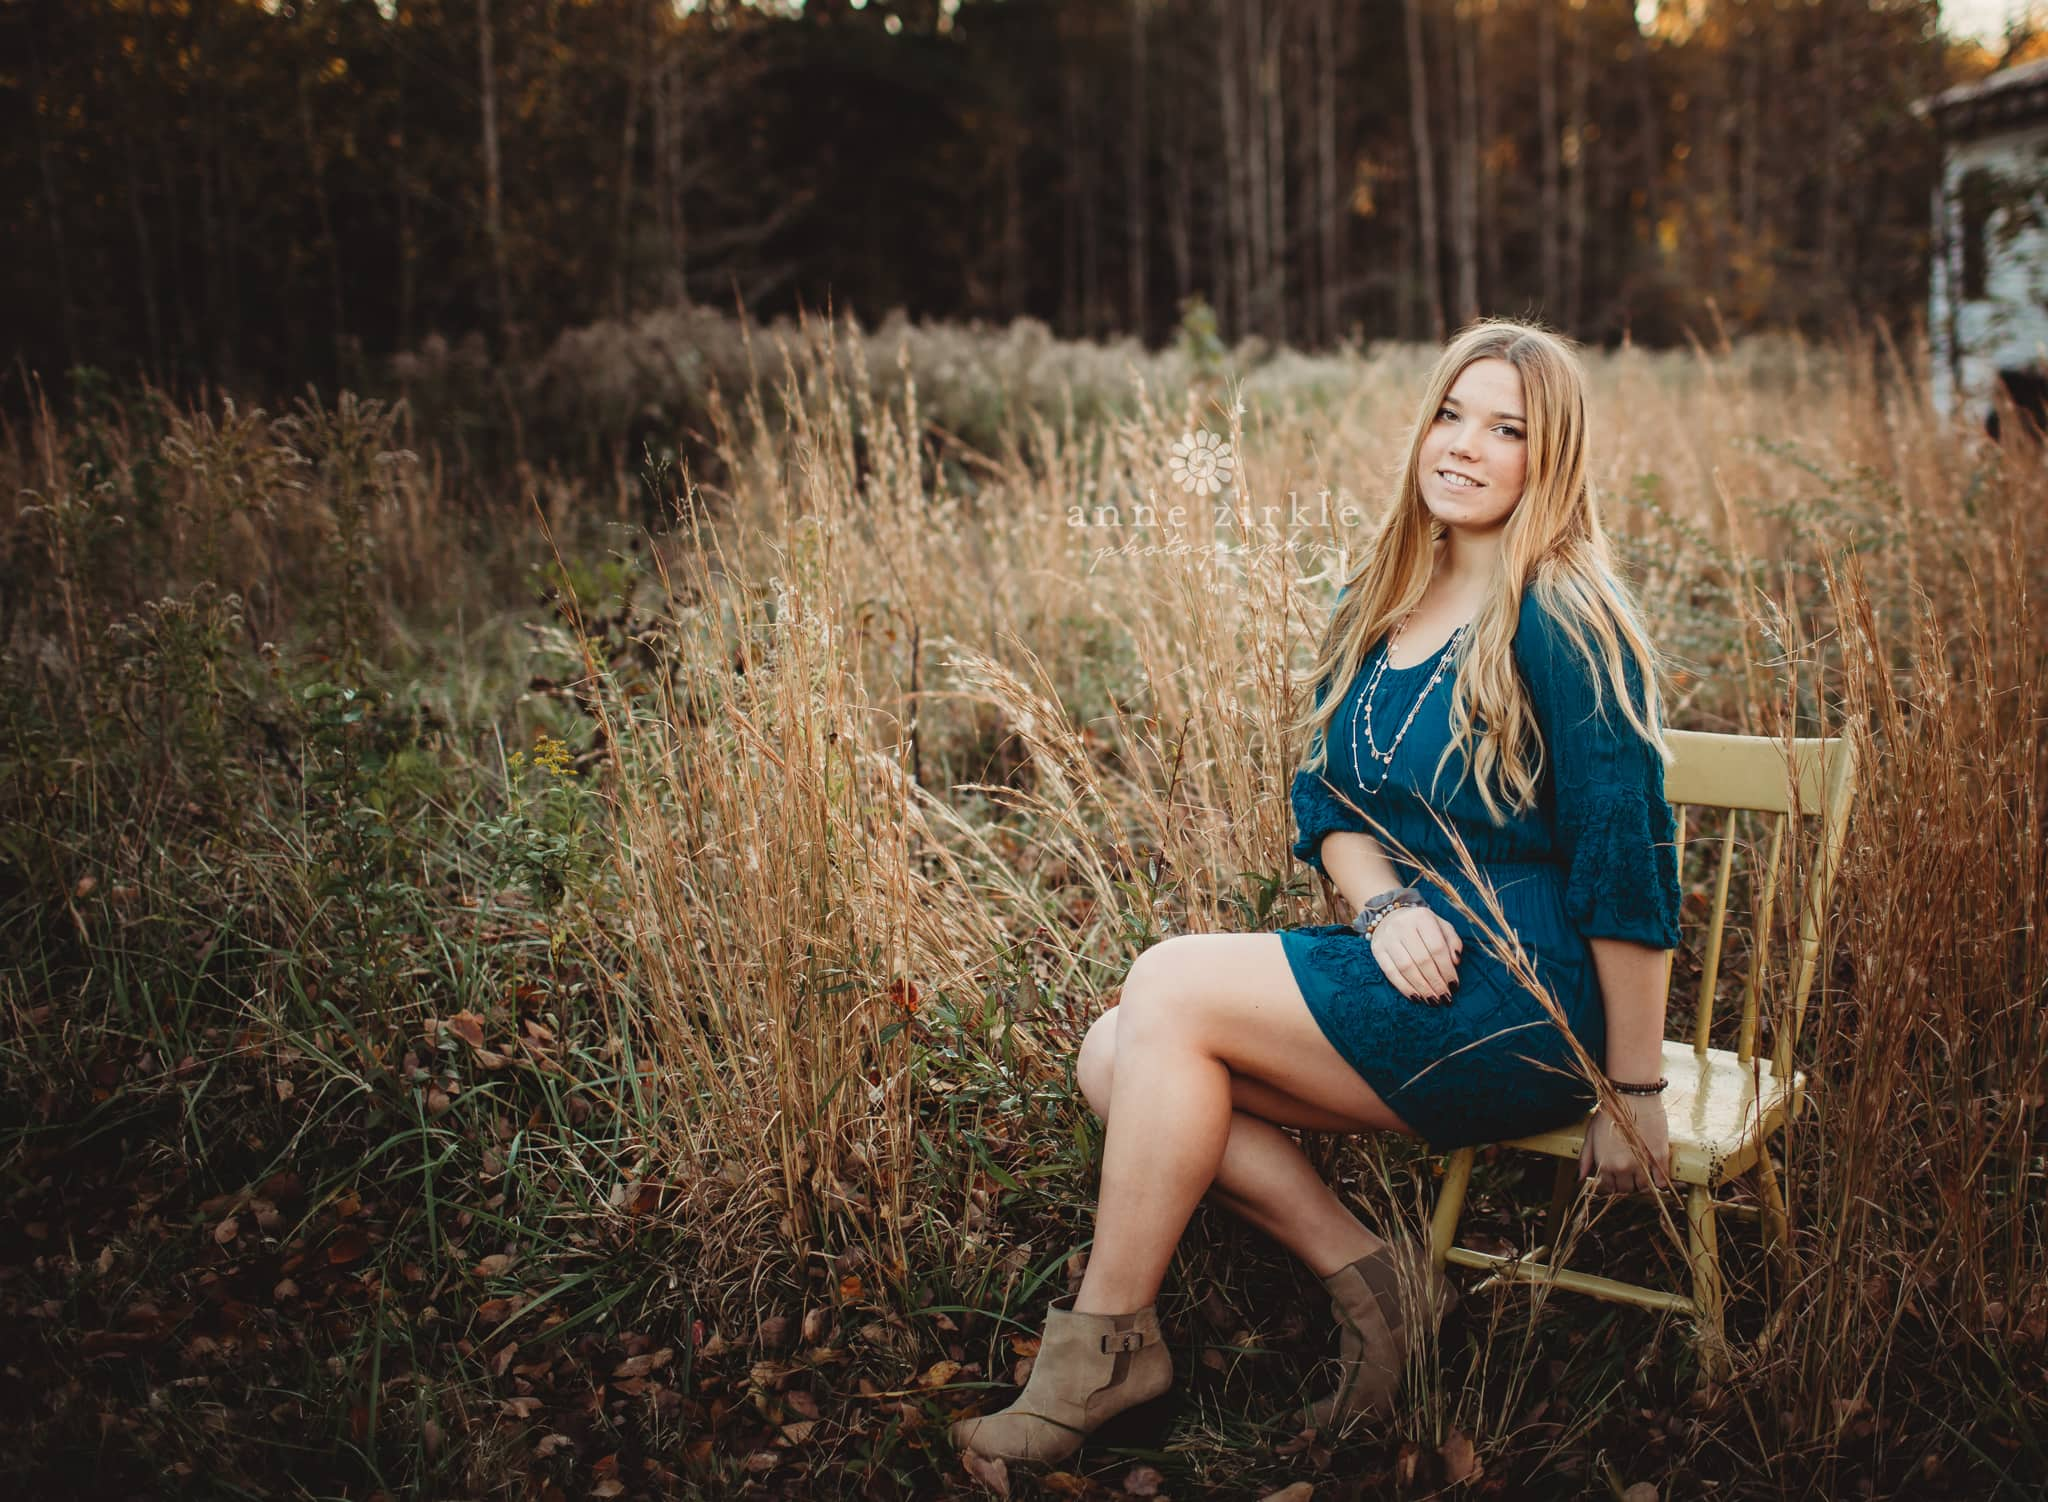 senior girl on a chair in autumn field #mooresville #northcarolina #davidson #lakenorman #southiredell #pinelakeprep #highschool #highschoolsenior #highschoolseniors #seniors